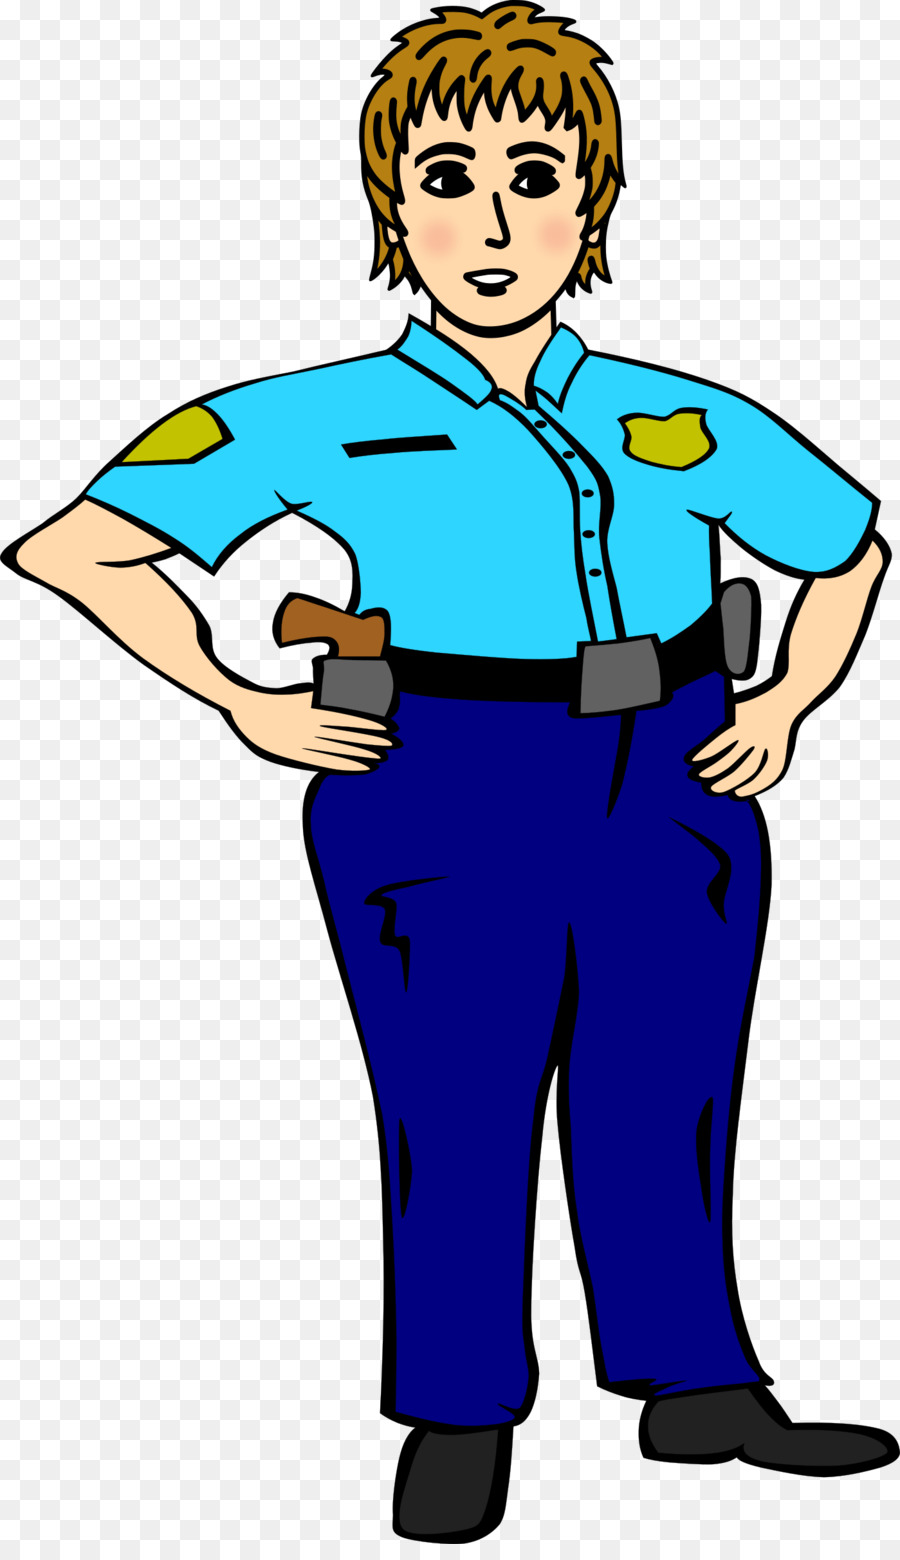 police officer woman clip art policeman png download 1399 2400 rh kisspng com police officer clipart girl police officer clipart girl